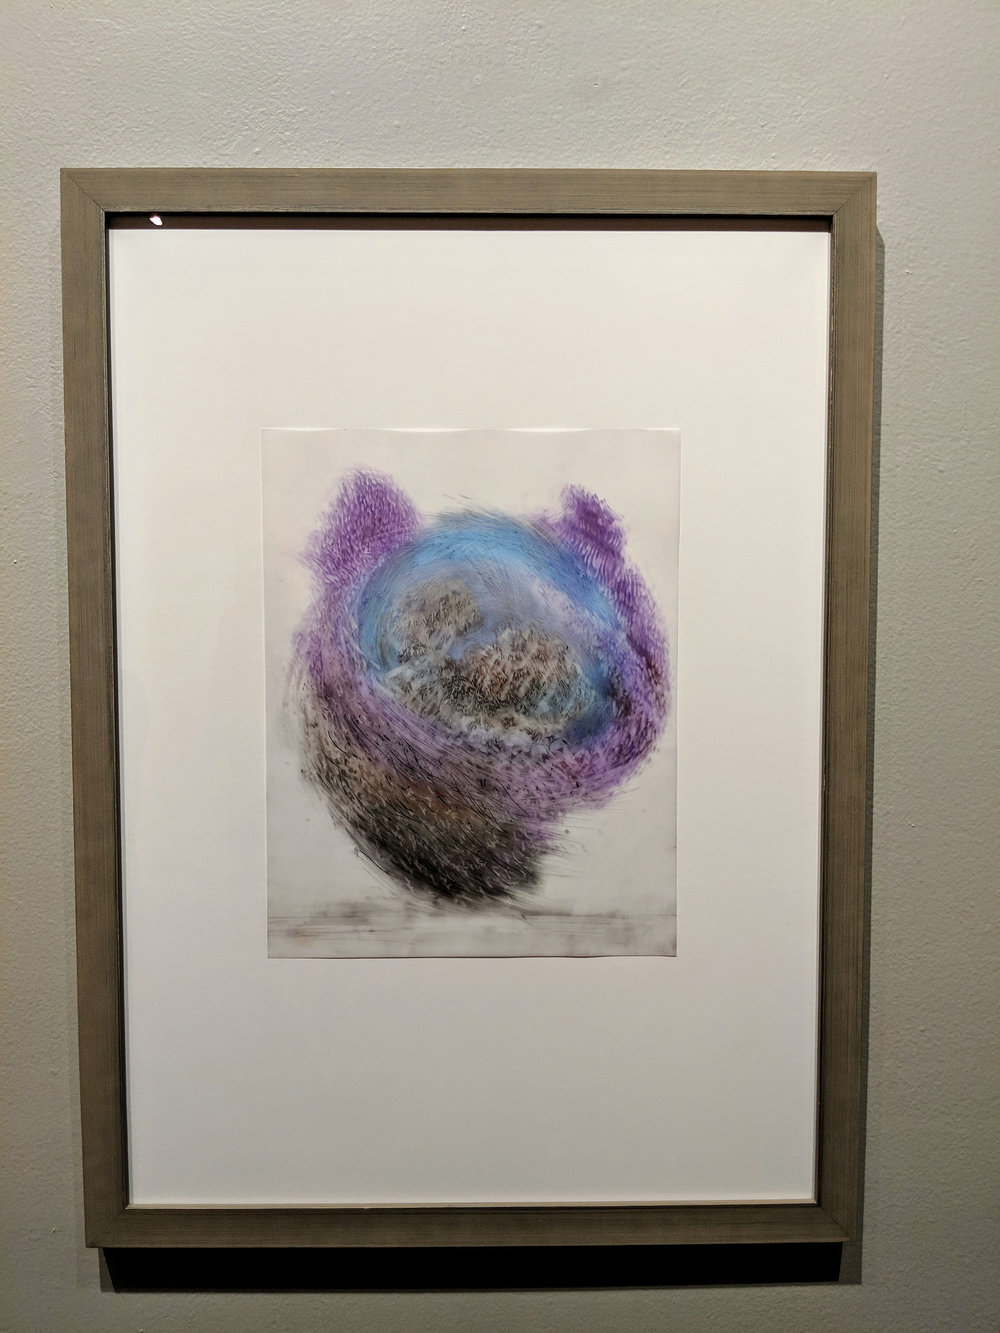 Observed and Recorded Permutation of the Holy Spirit XVII    Medium  graphite/pastel on duralar with wood frame   Size  28 3/8 x 20 7/8 in.   Price $800